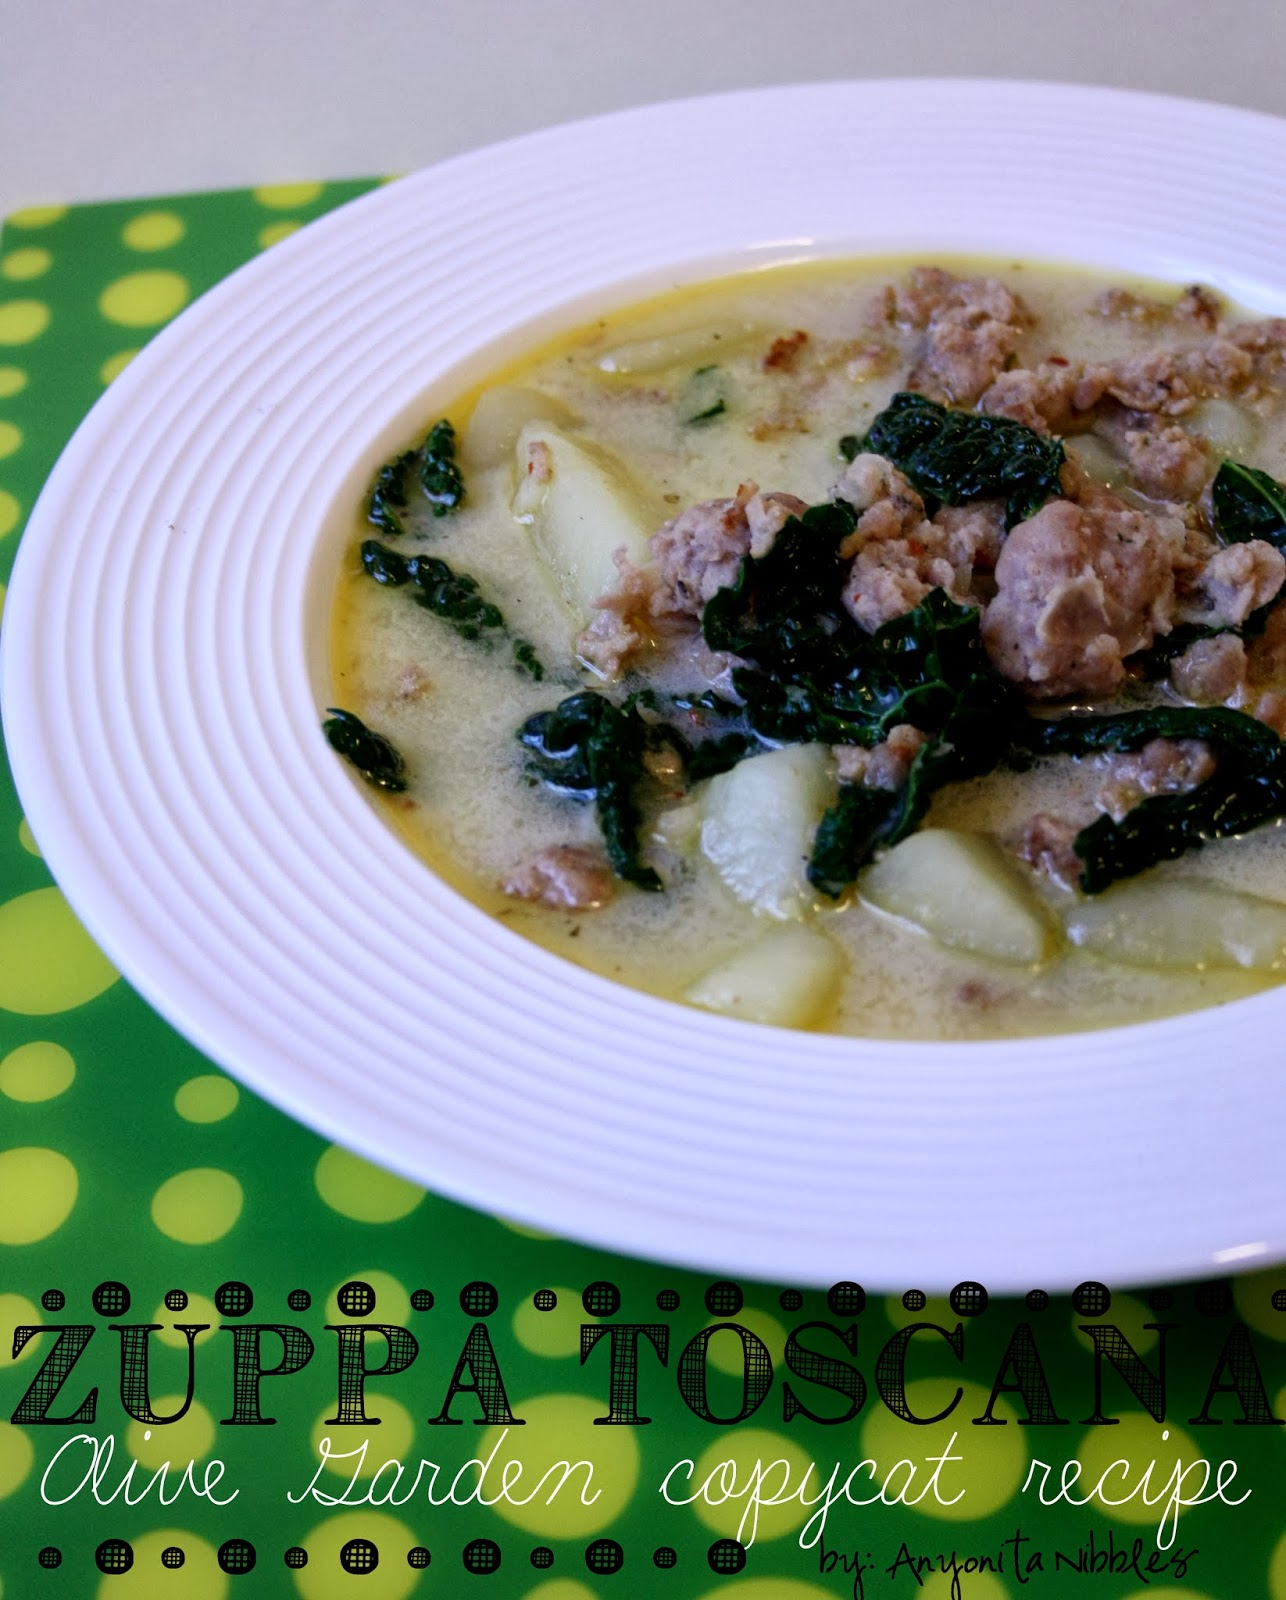 Rustic Sausage and Kale Soup with Potatoes